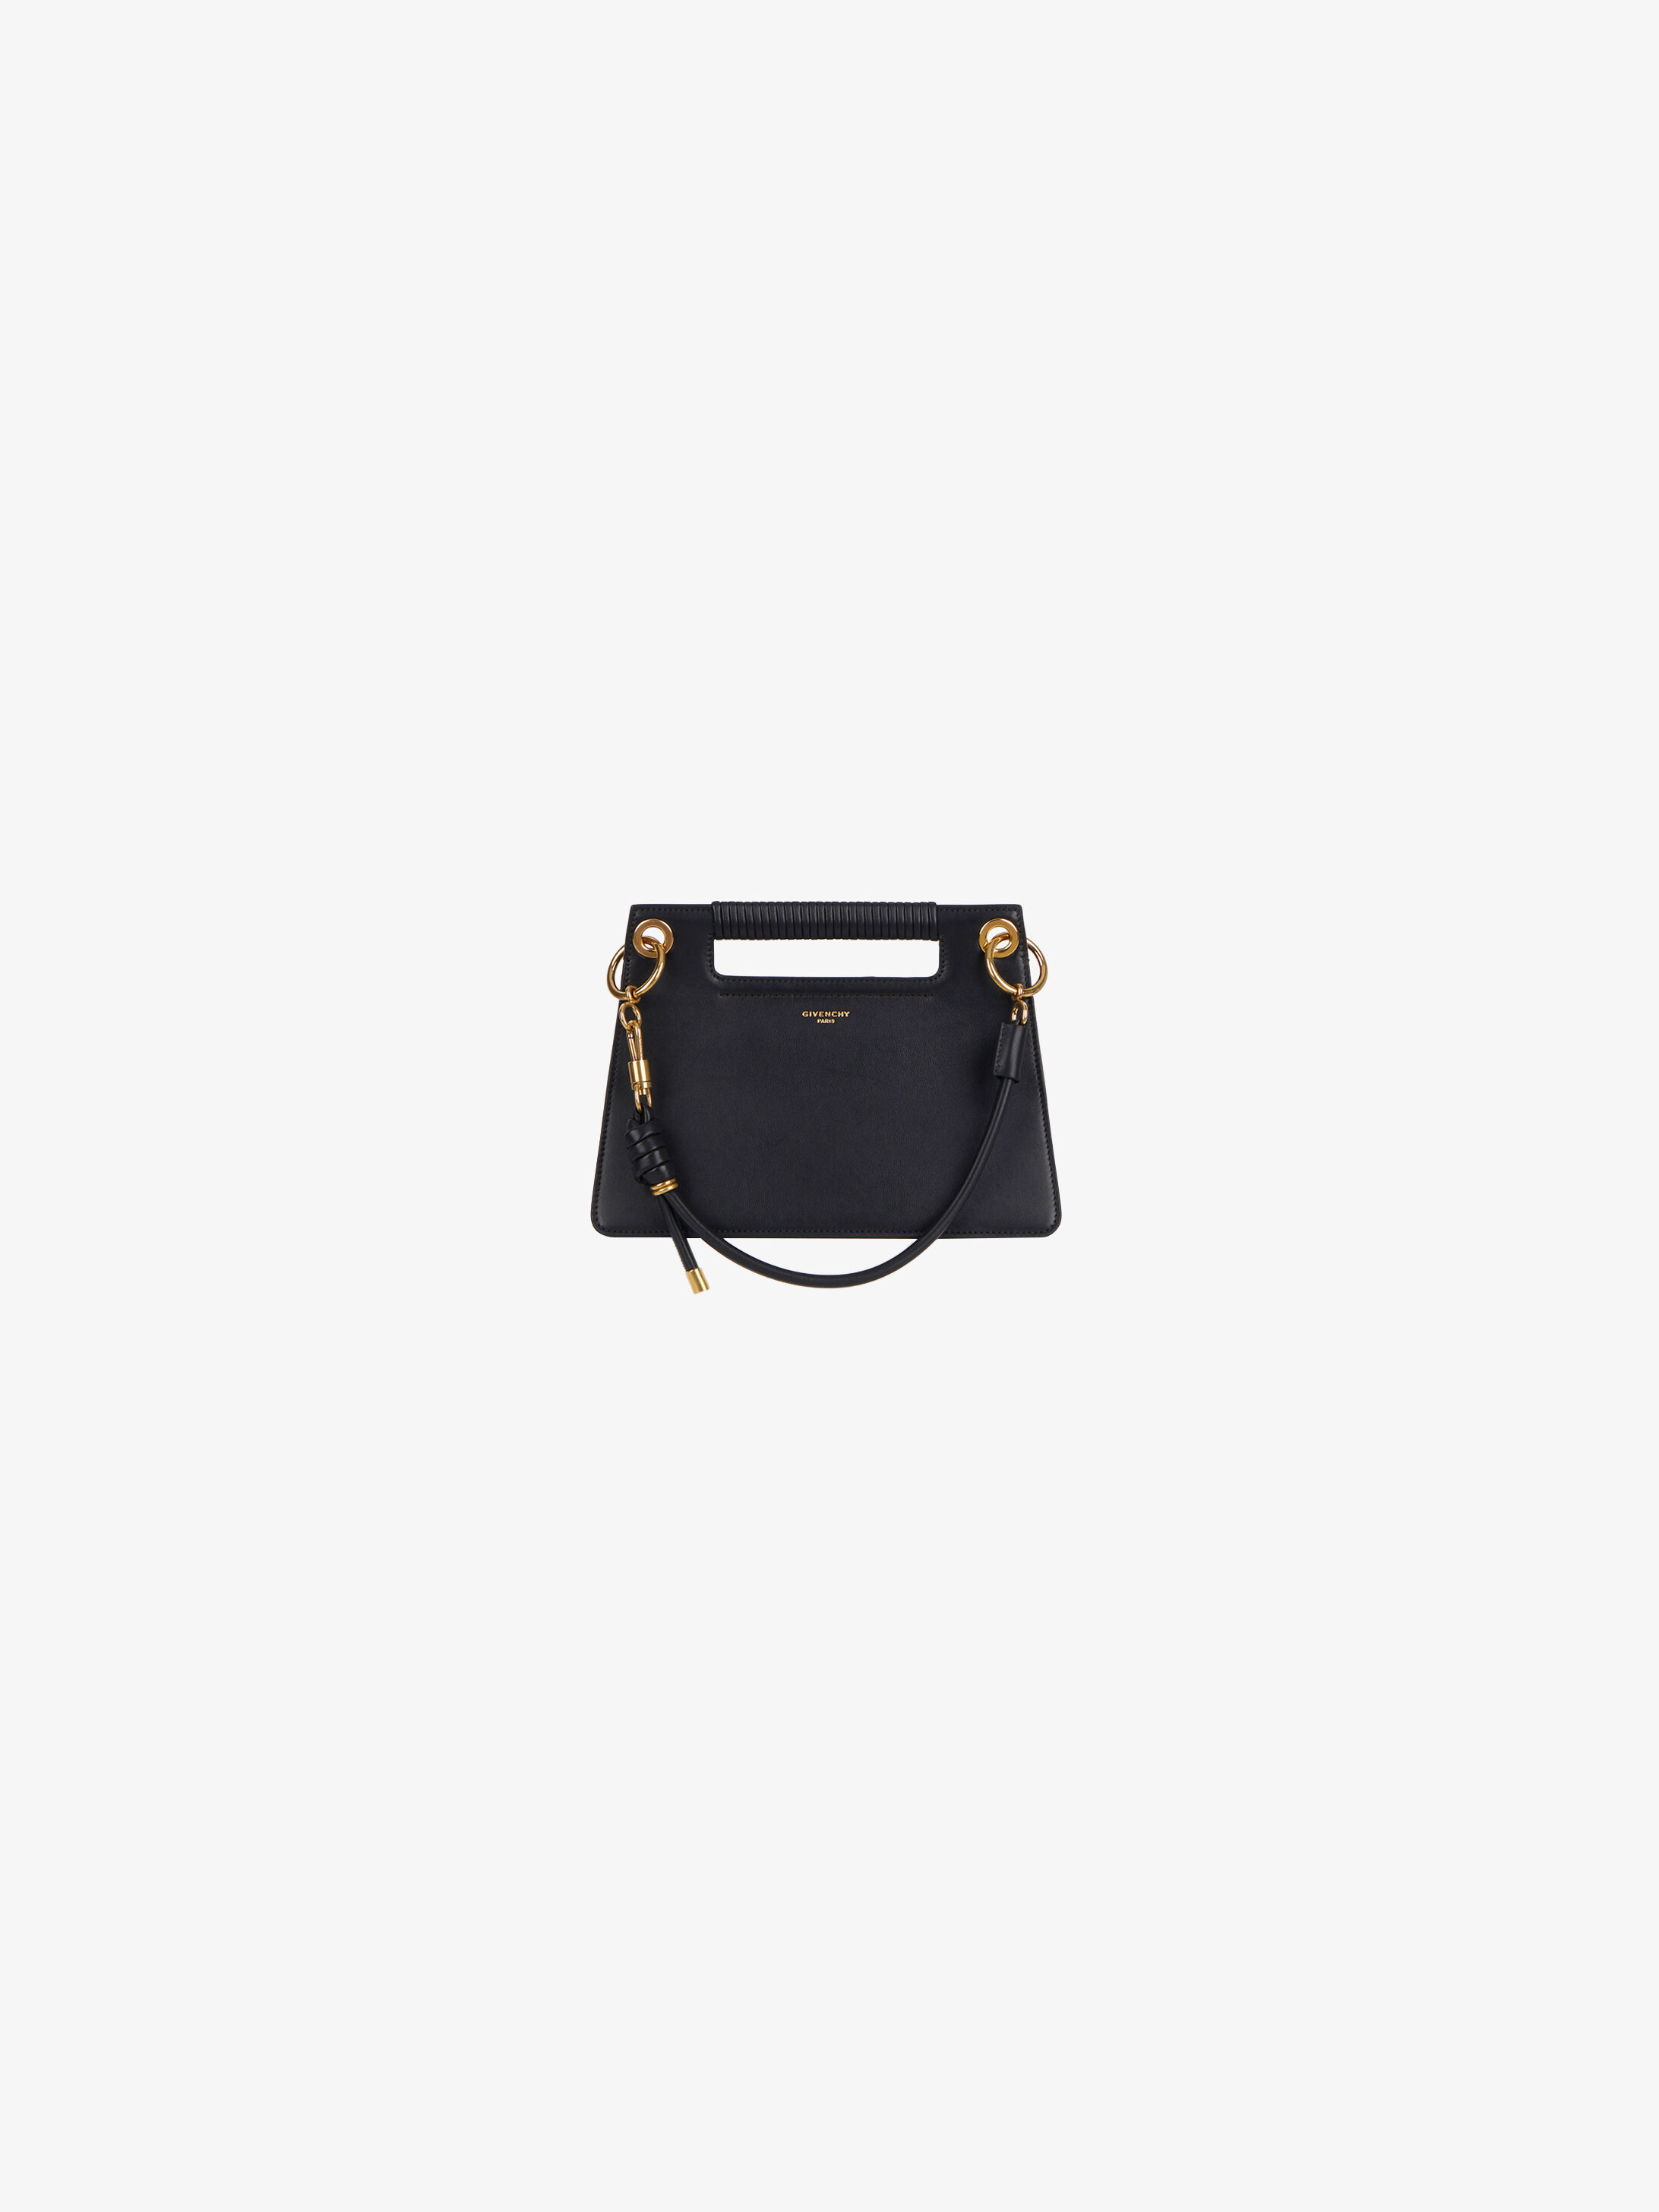 Women s Handbags collection by Givenchy.  db6a8973b2eb9